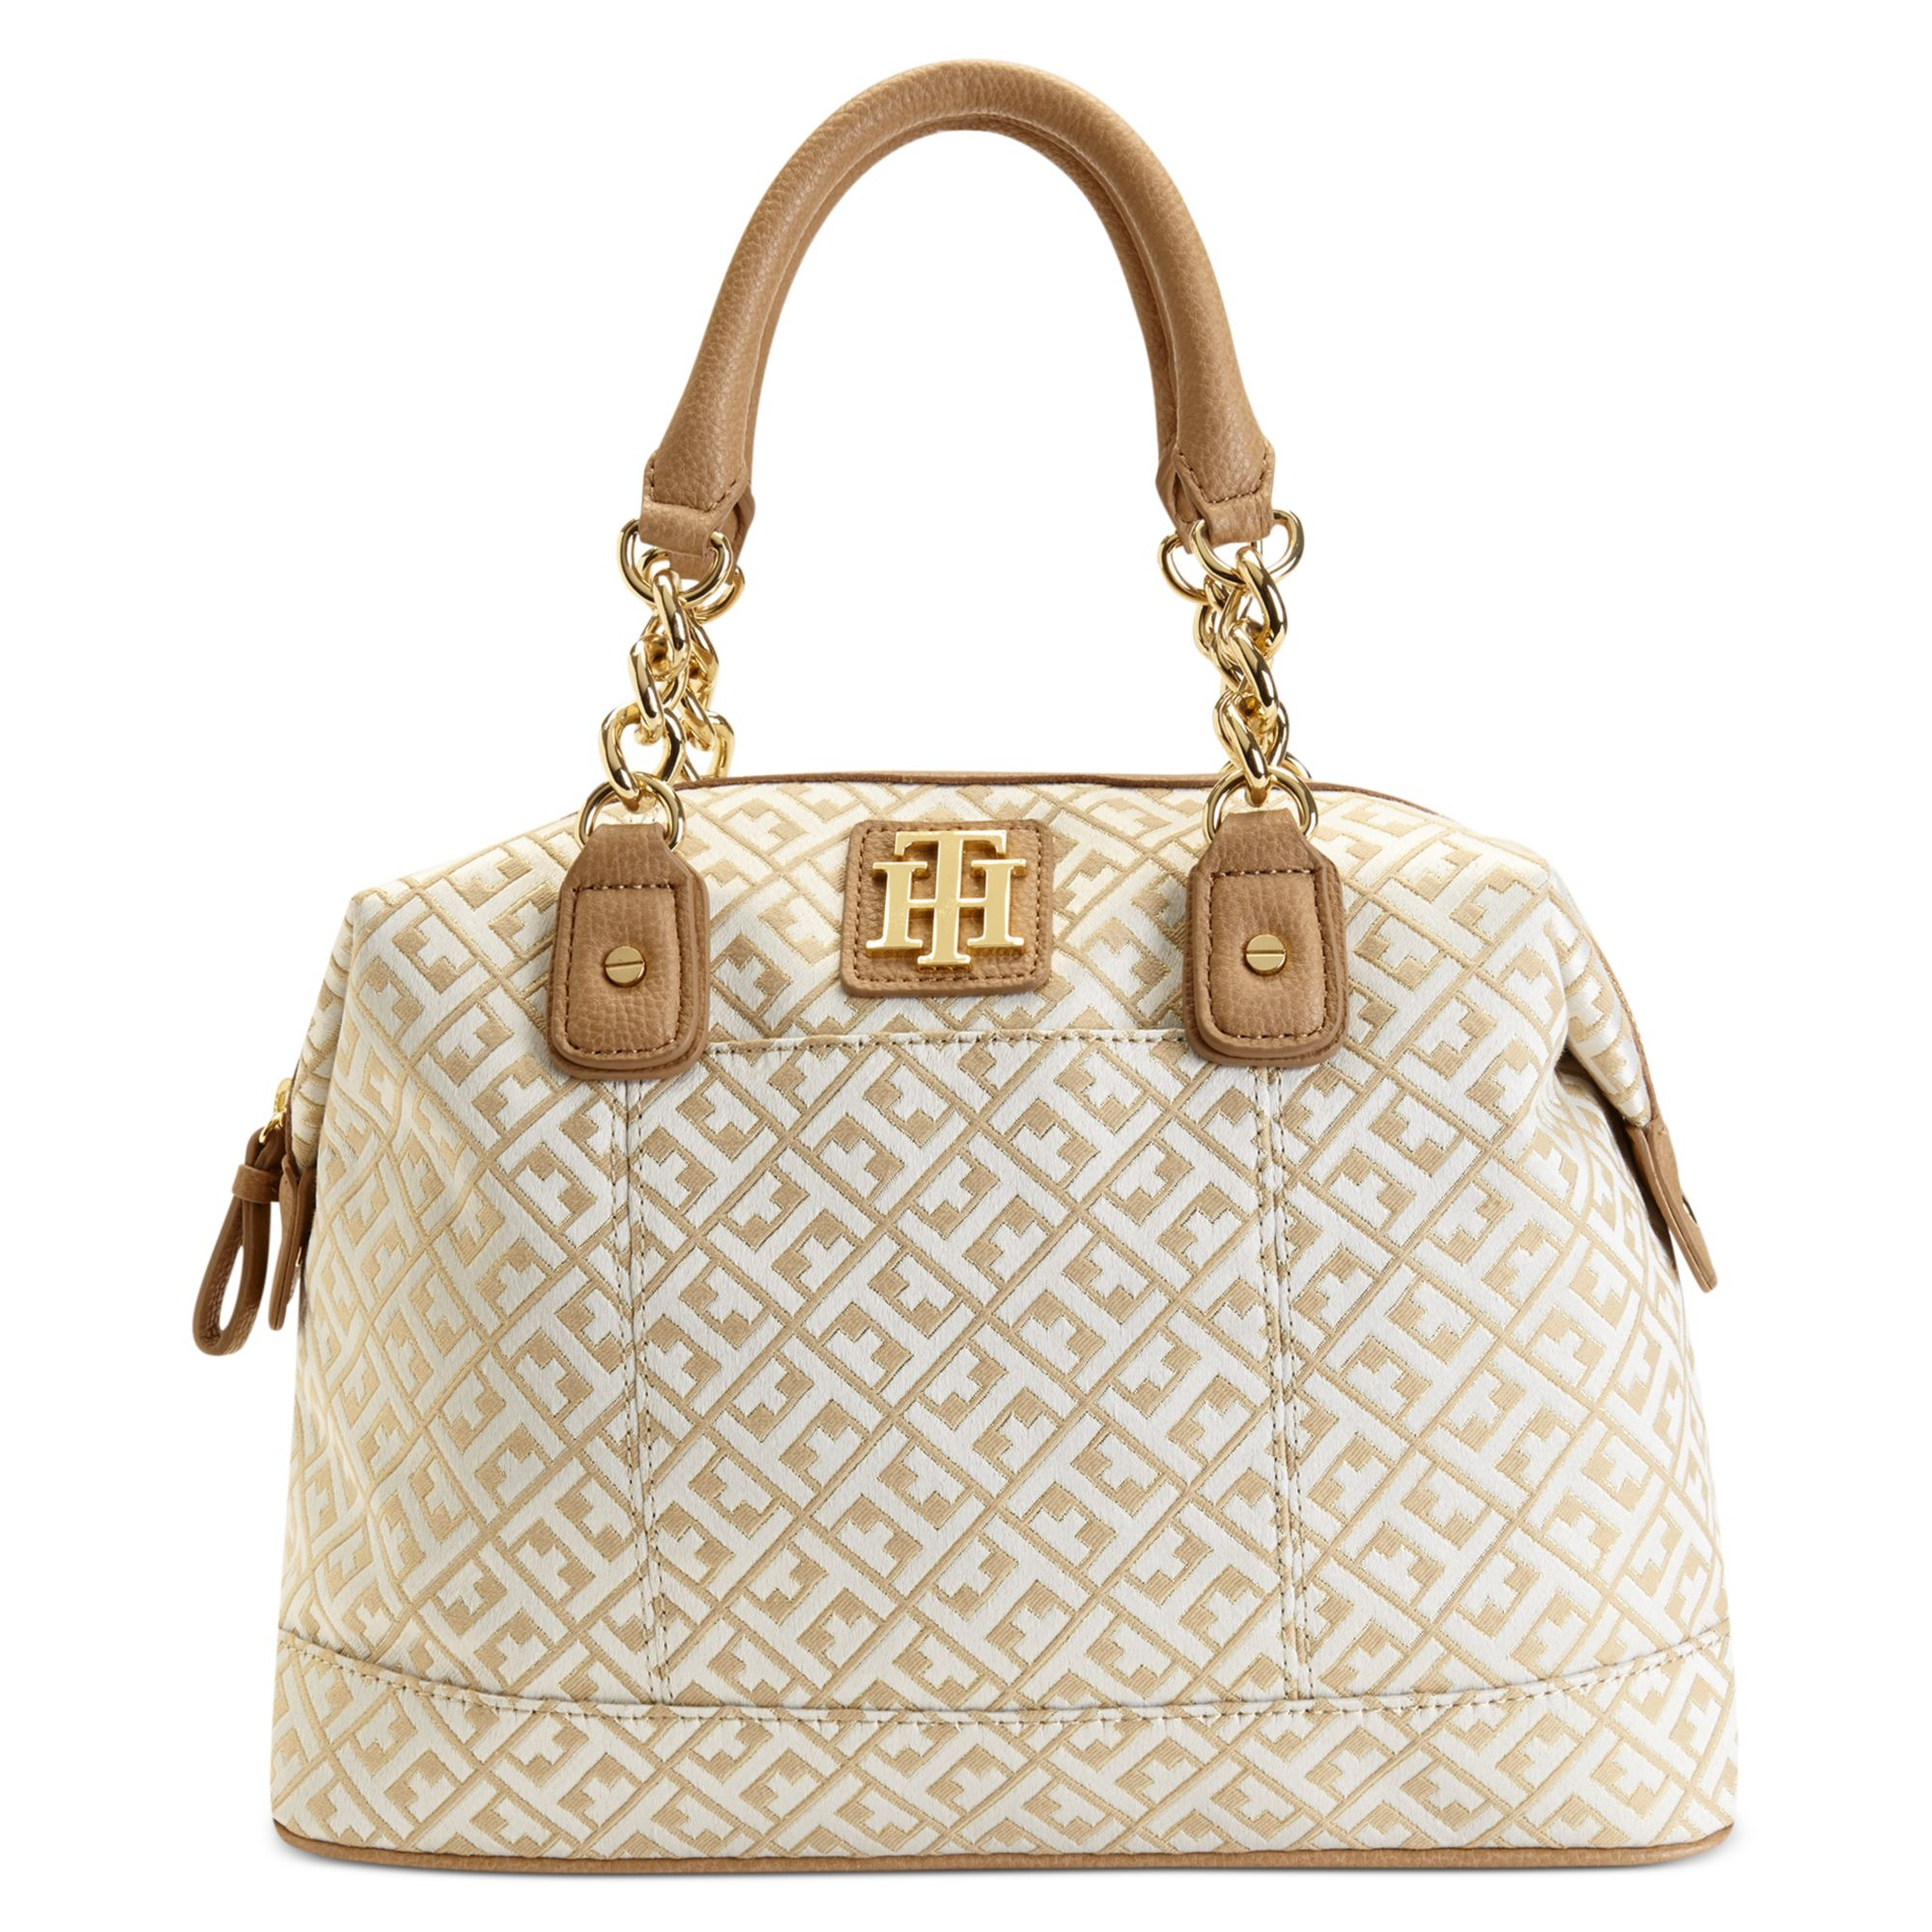 20442b364c4 Lyst - Tommy Hilfiger Bombay Jaquard Bowler Bag in Metallic